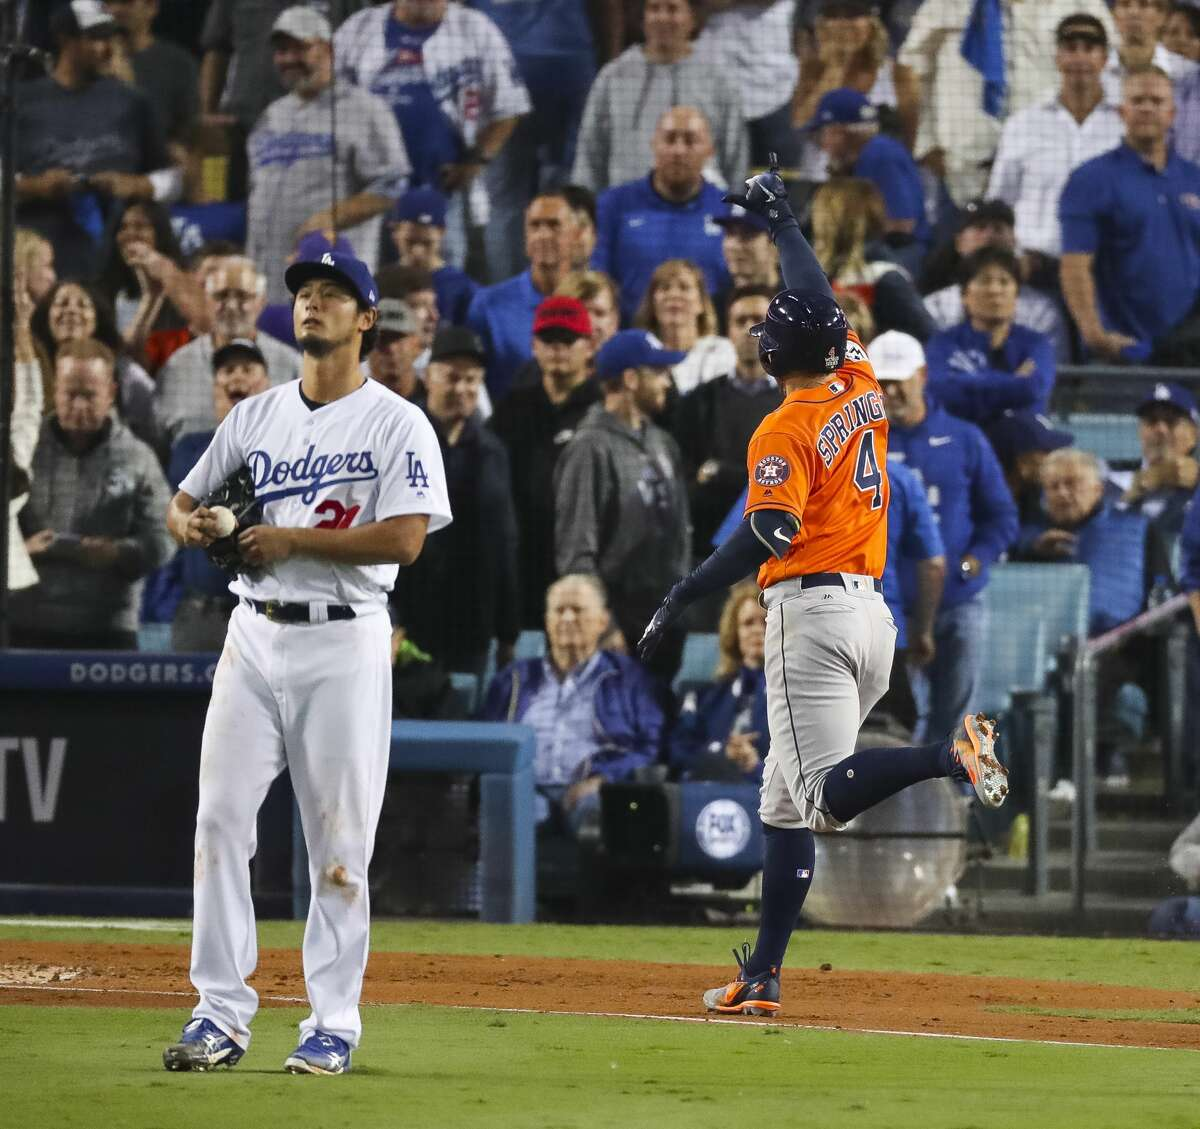 Los Angeles Dodgers starting pitcher Yu Darvish (21) reacts as Houston Astros center fielder George Springer (4) runs home after hitting a two-run home run during the second inning of Game 7 of the World Series at Dodger Stadium on Wednesday, Nov. 1, 2017, in Los Angeles.